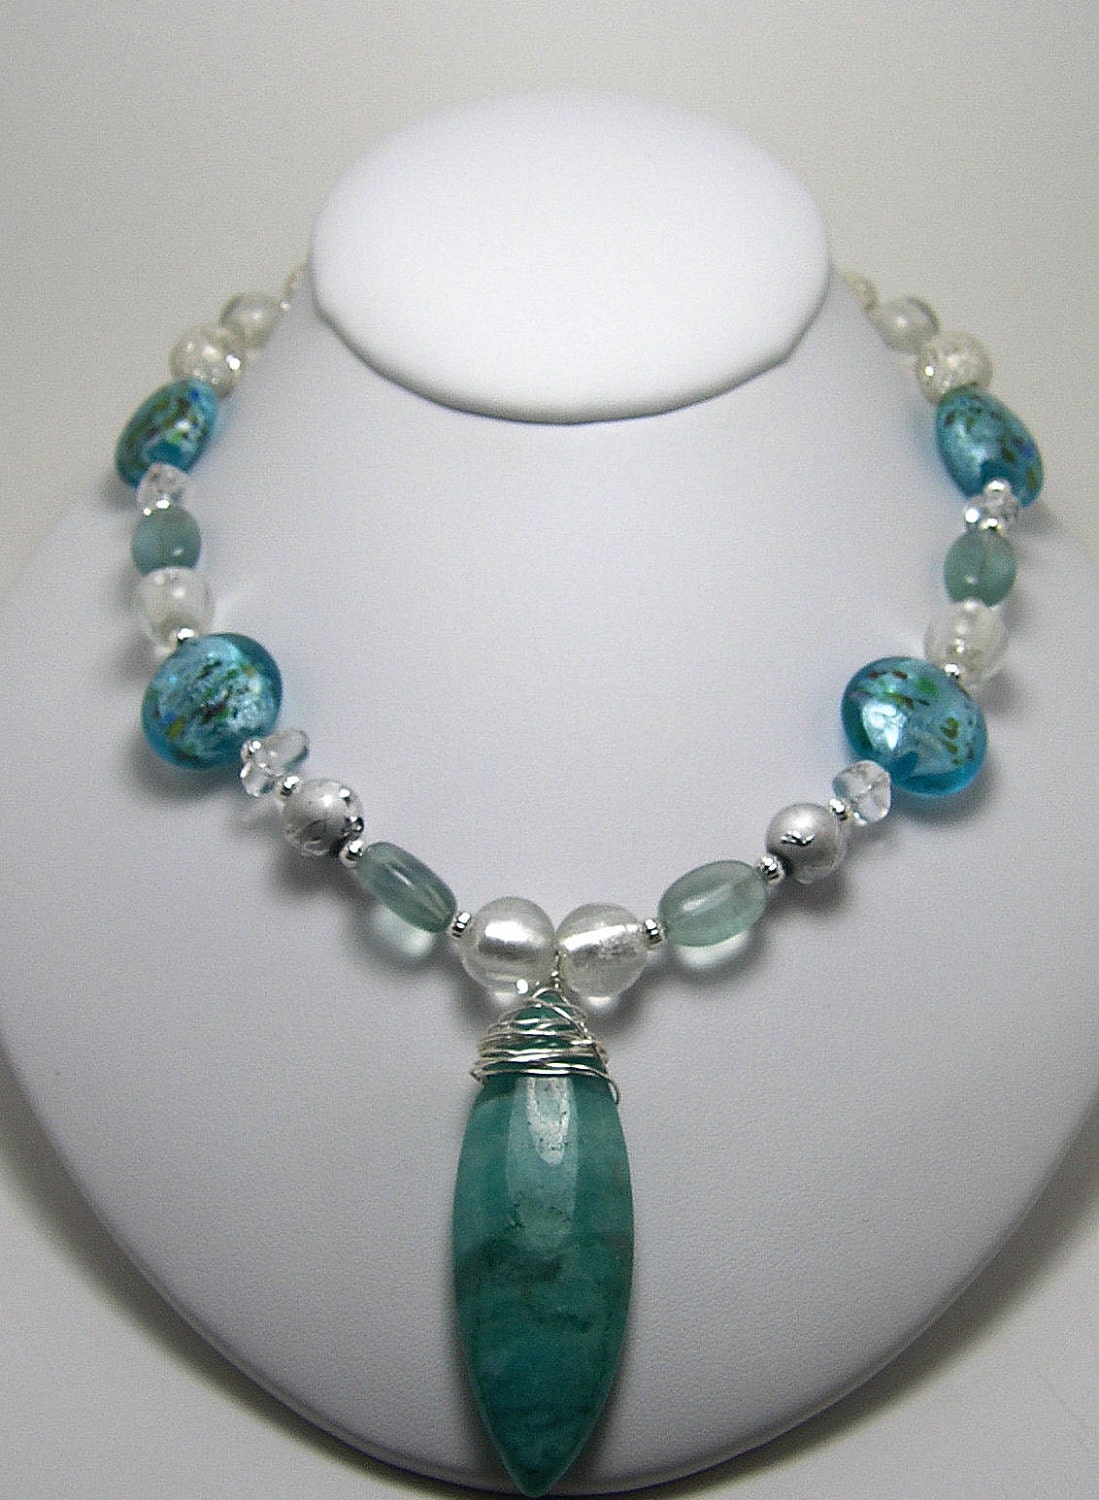 Crystal Blue Persuasion necklace with blue jasper drop, glass and foil beads, fluorite, and silverplated beads